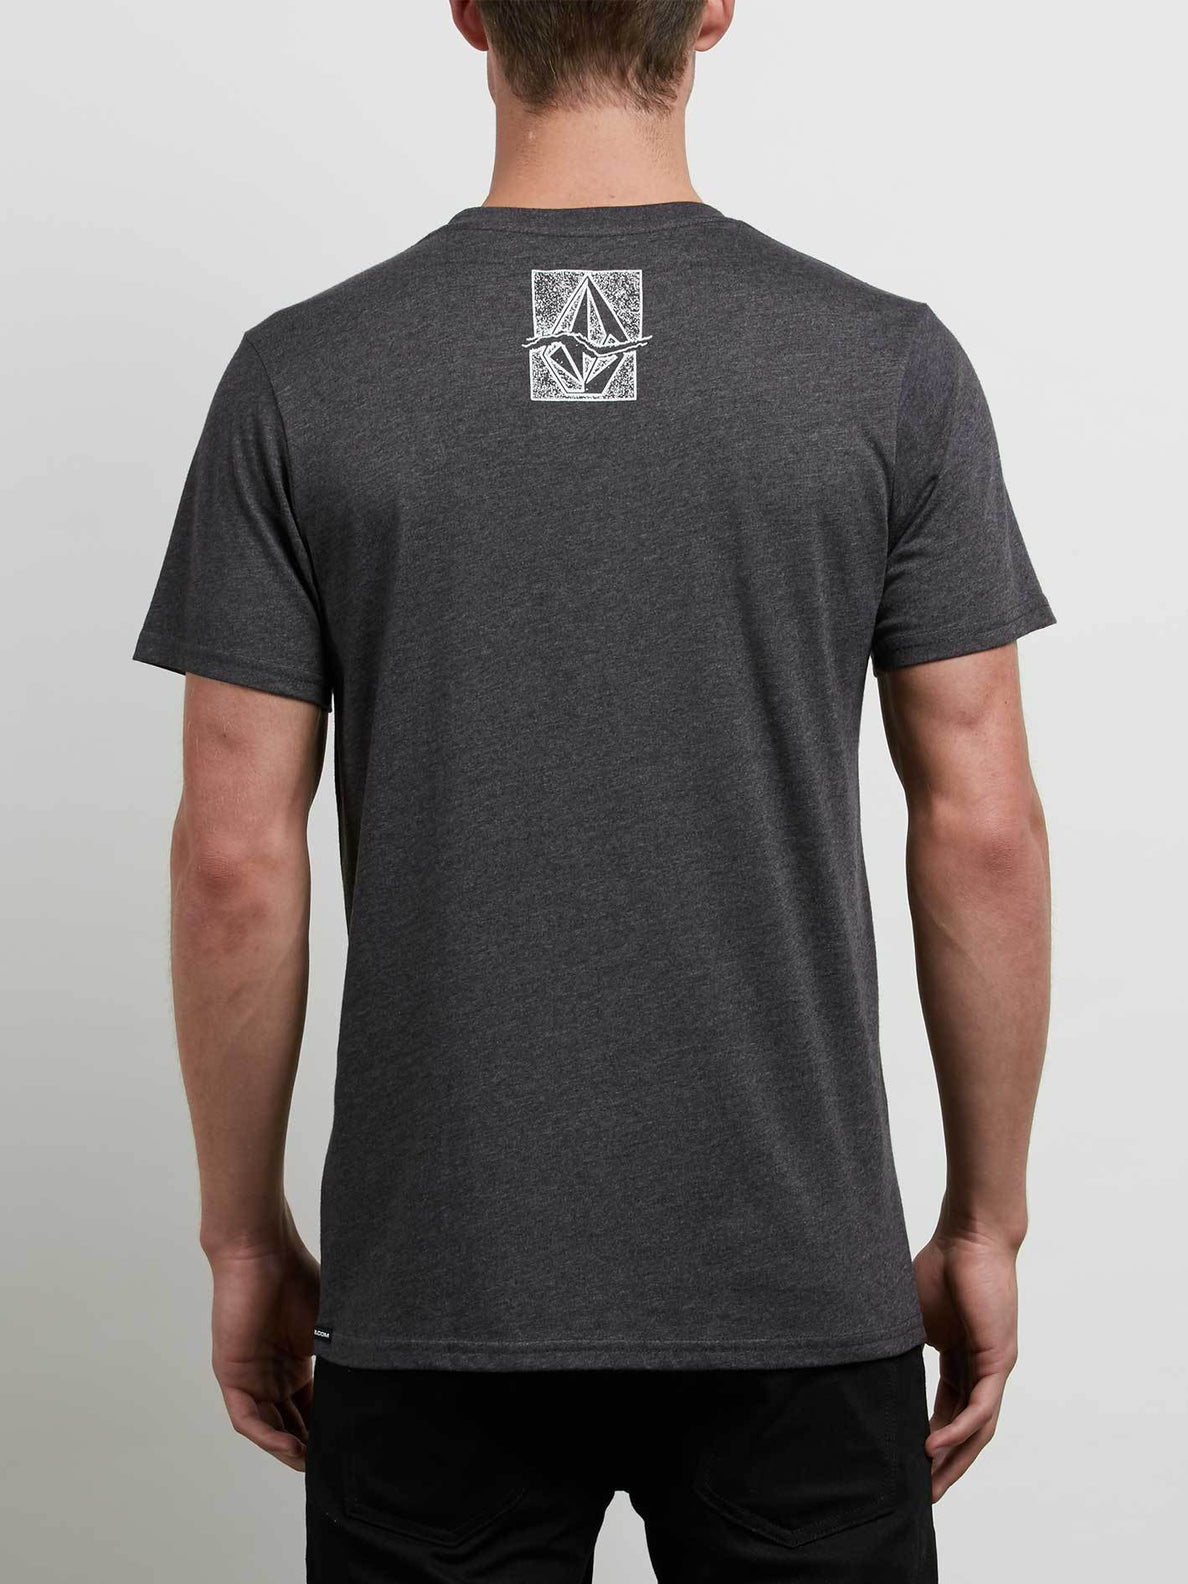 Edge Tee In Heather Black, Back View